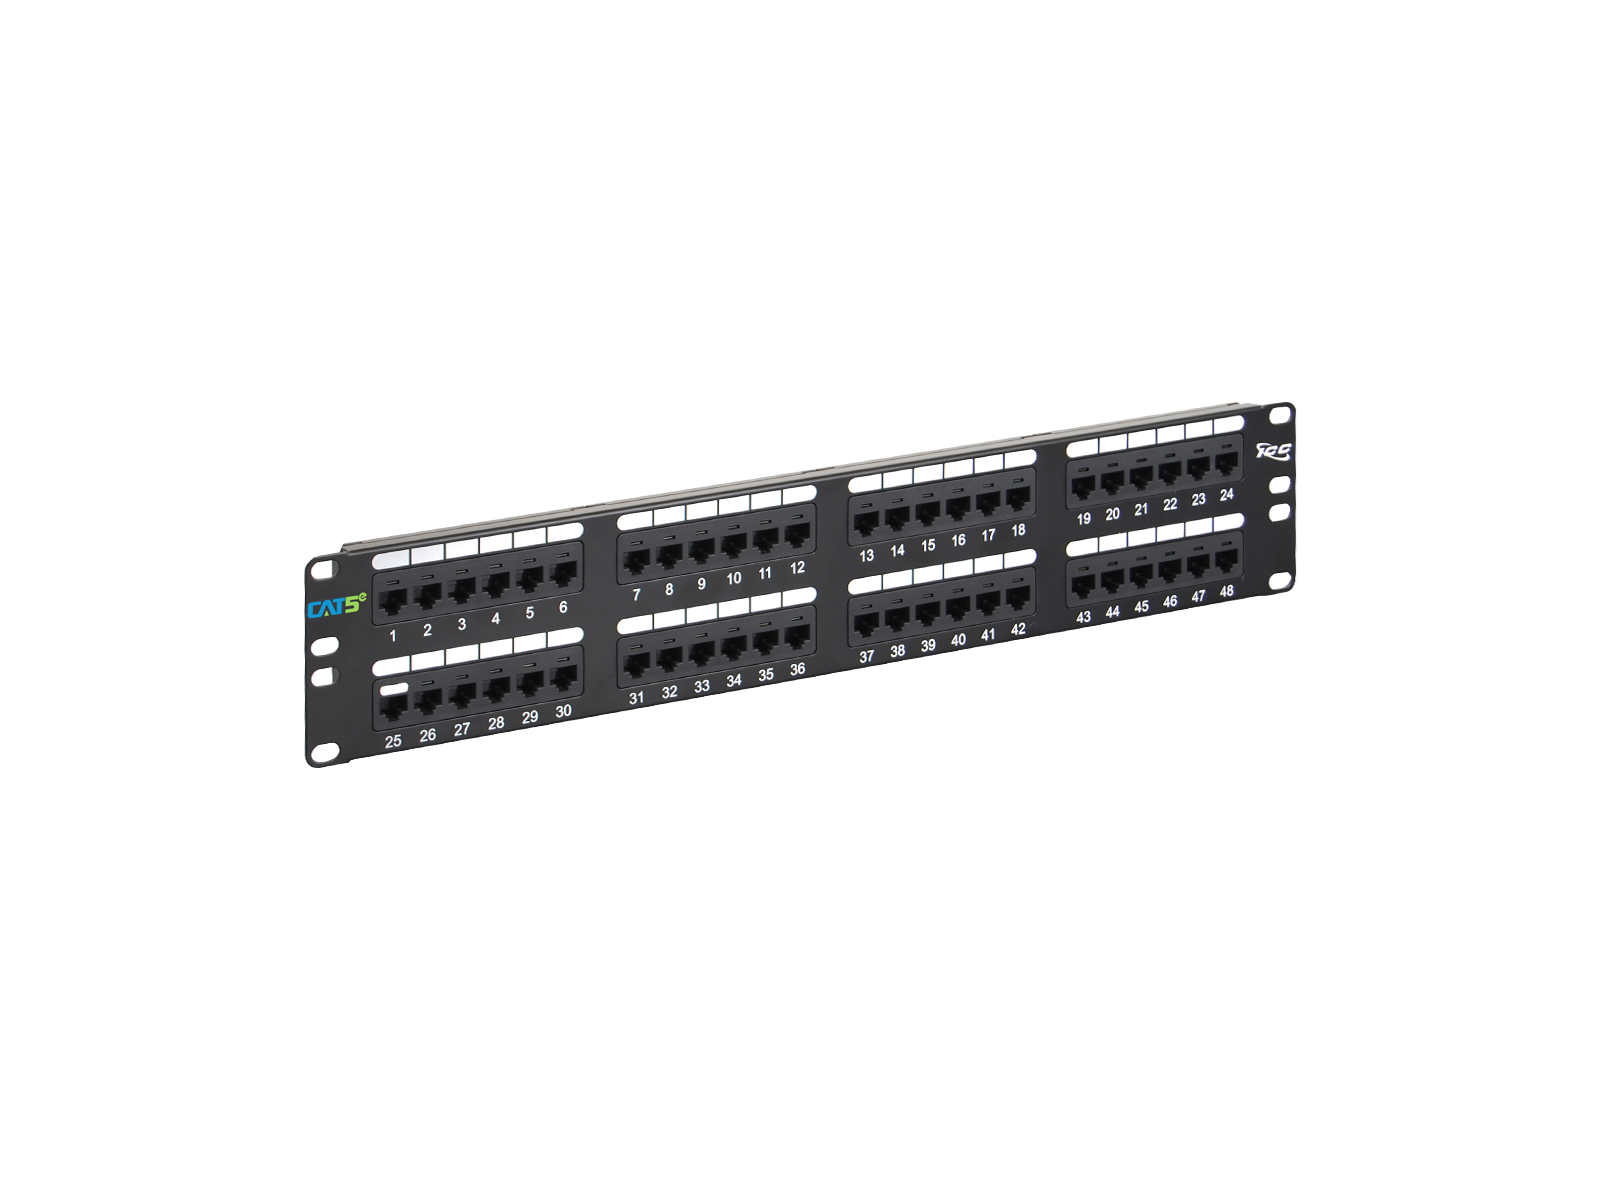 Cat5e Rack Wiring Diagram Library Server Picture Of Cat 5e Patch Panel 48 Port 2 Rms